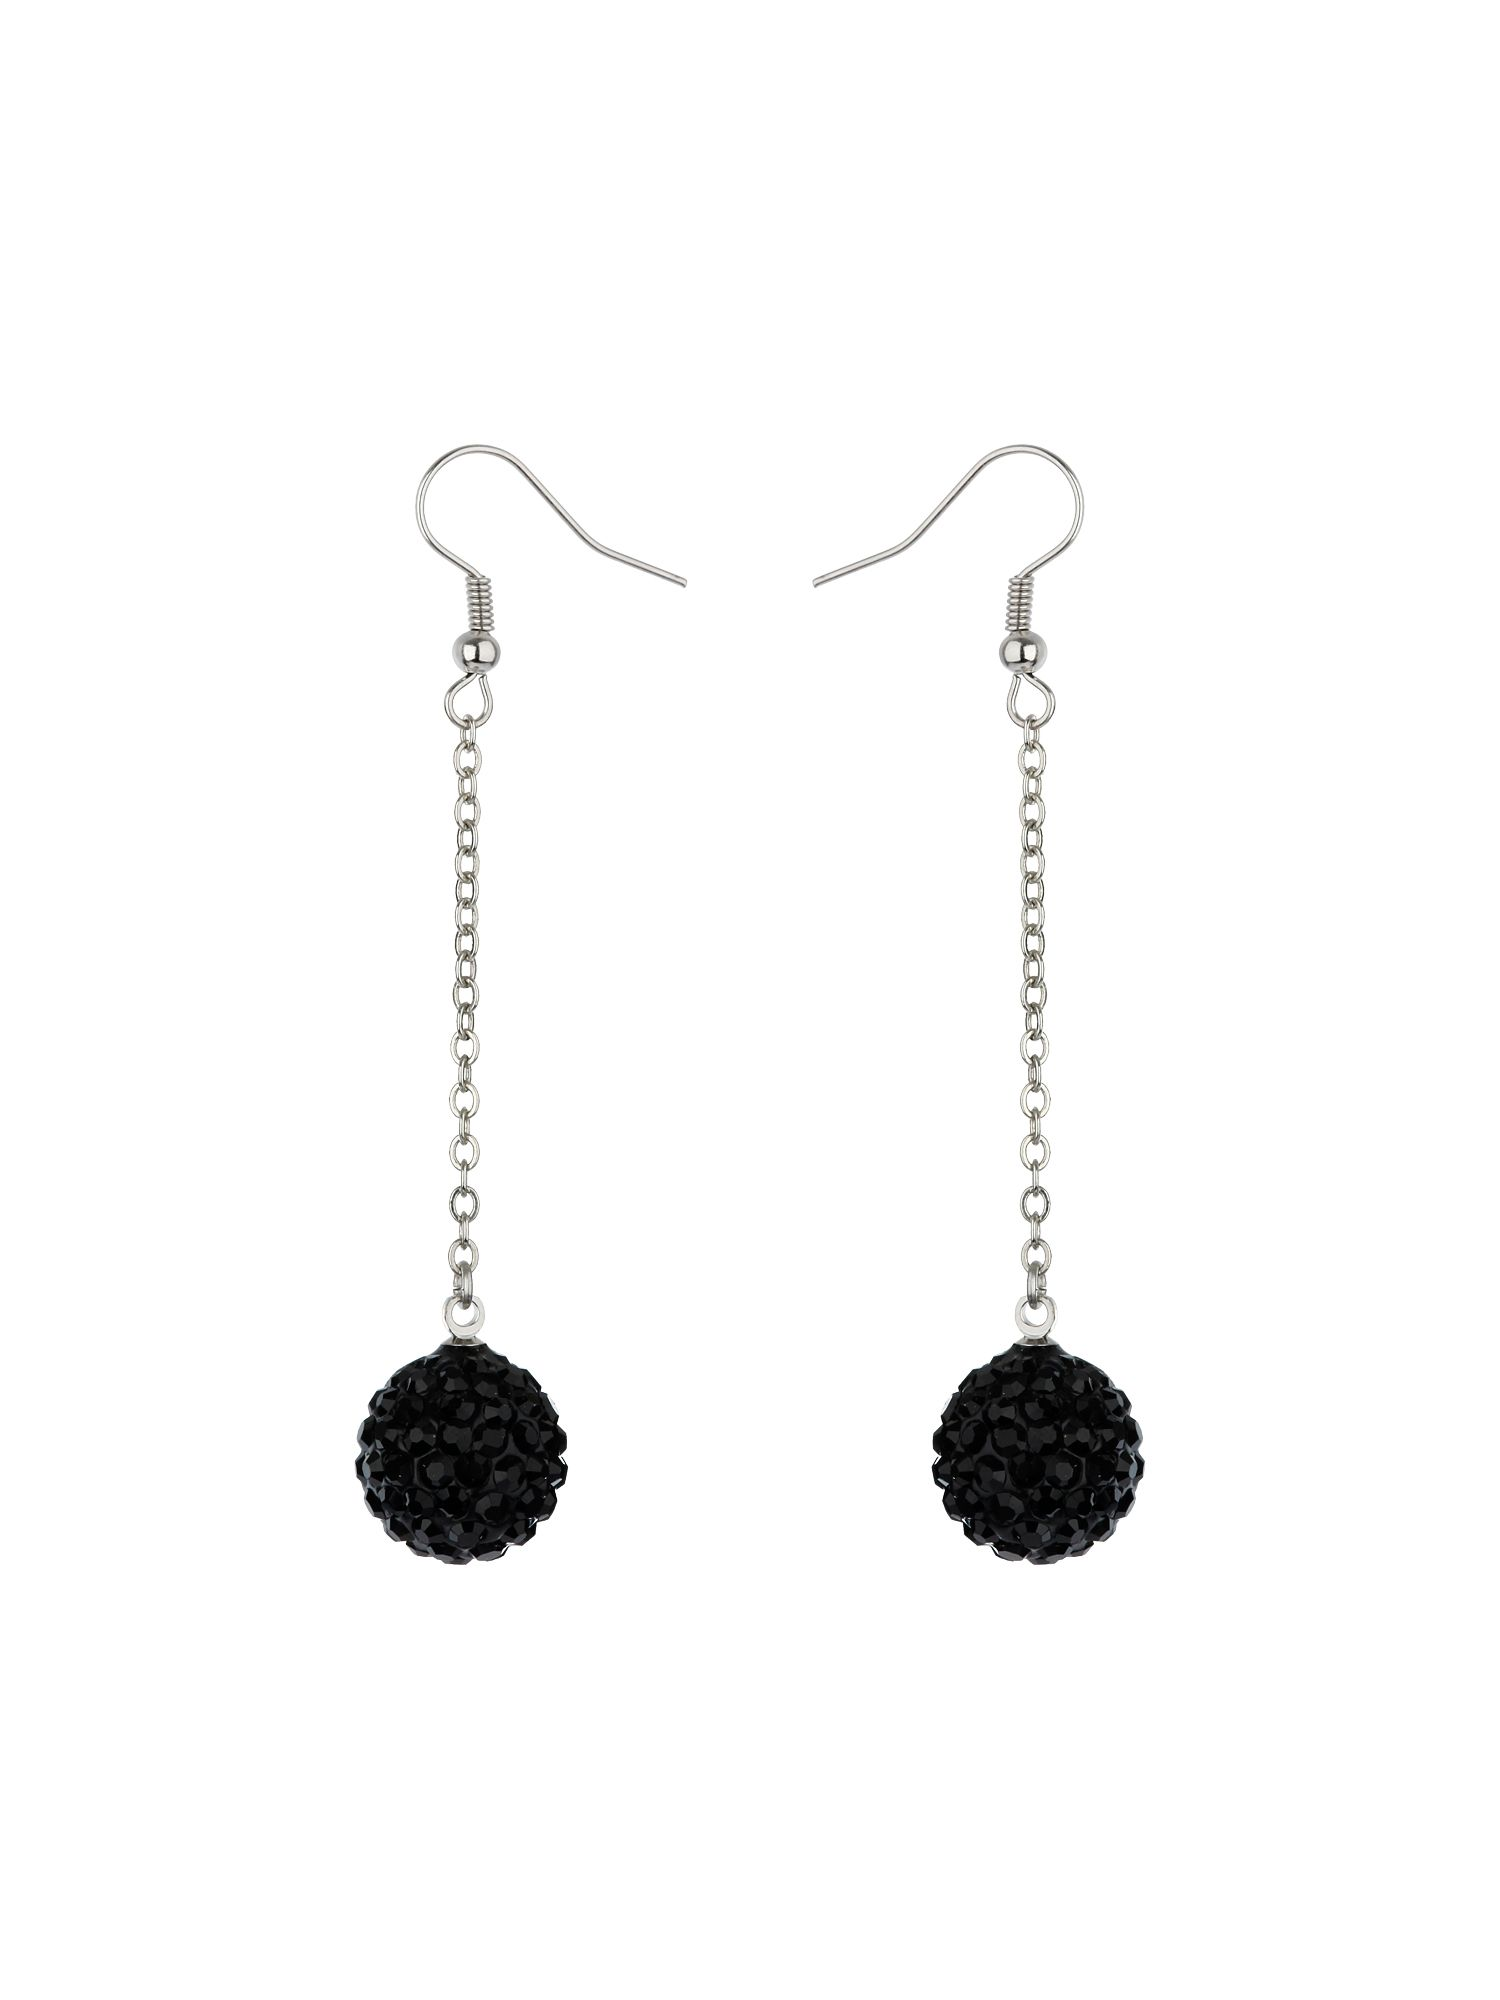 14mm crystal drop earrings